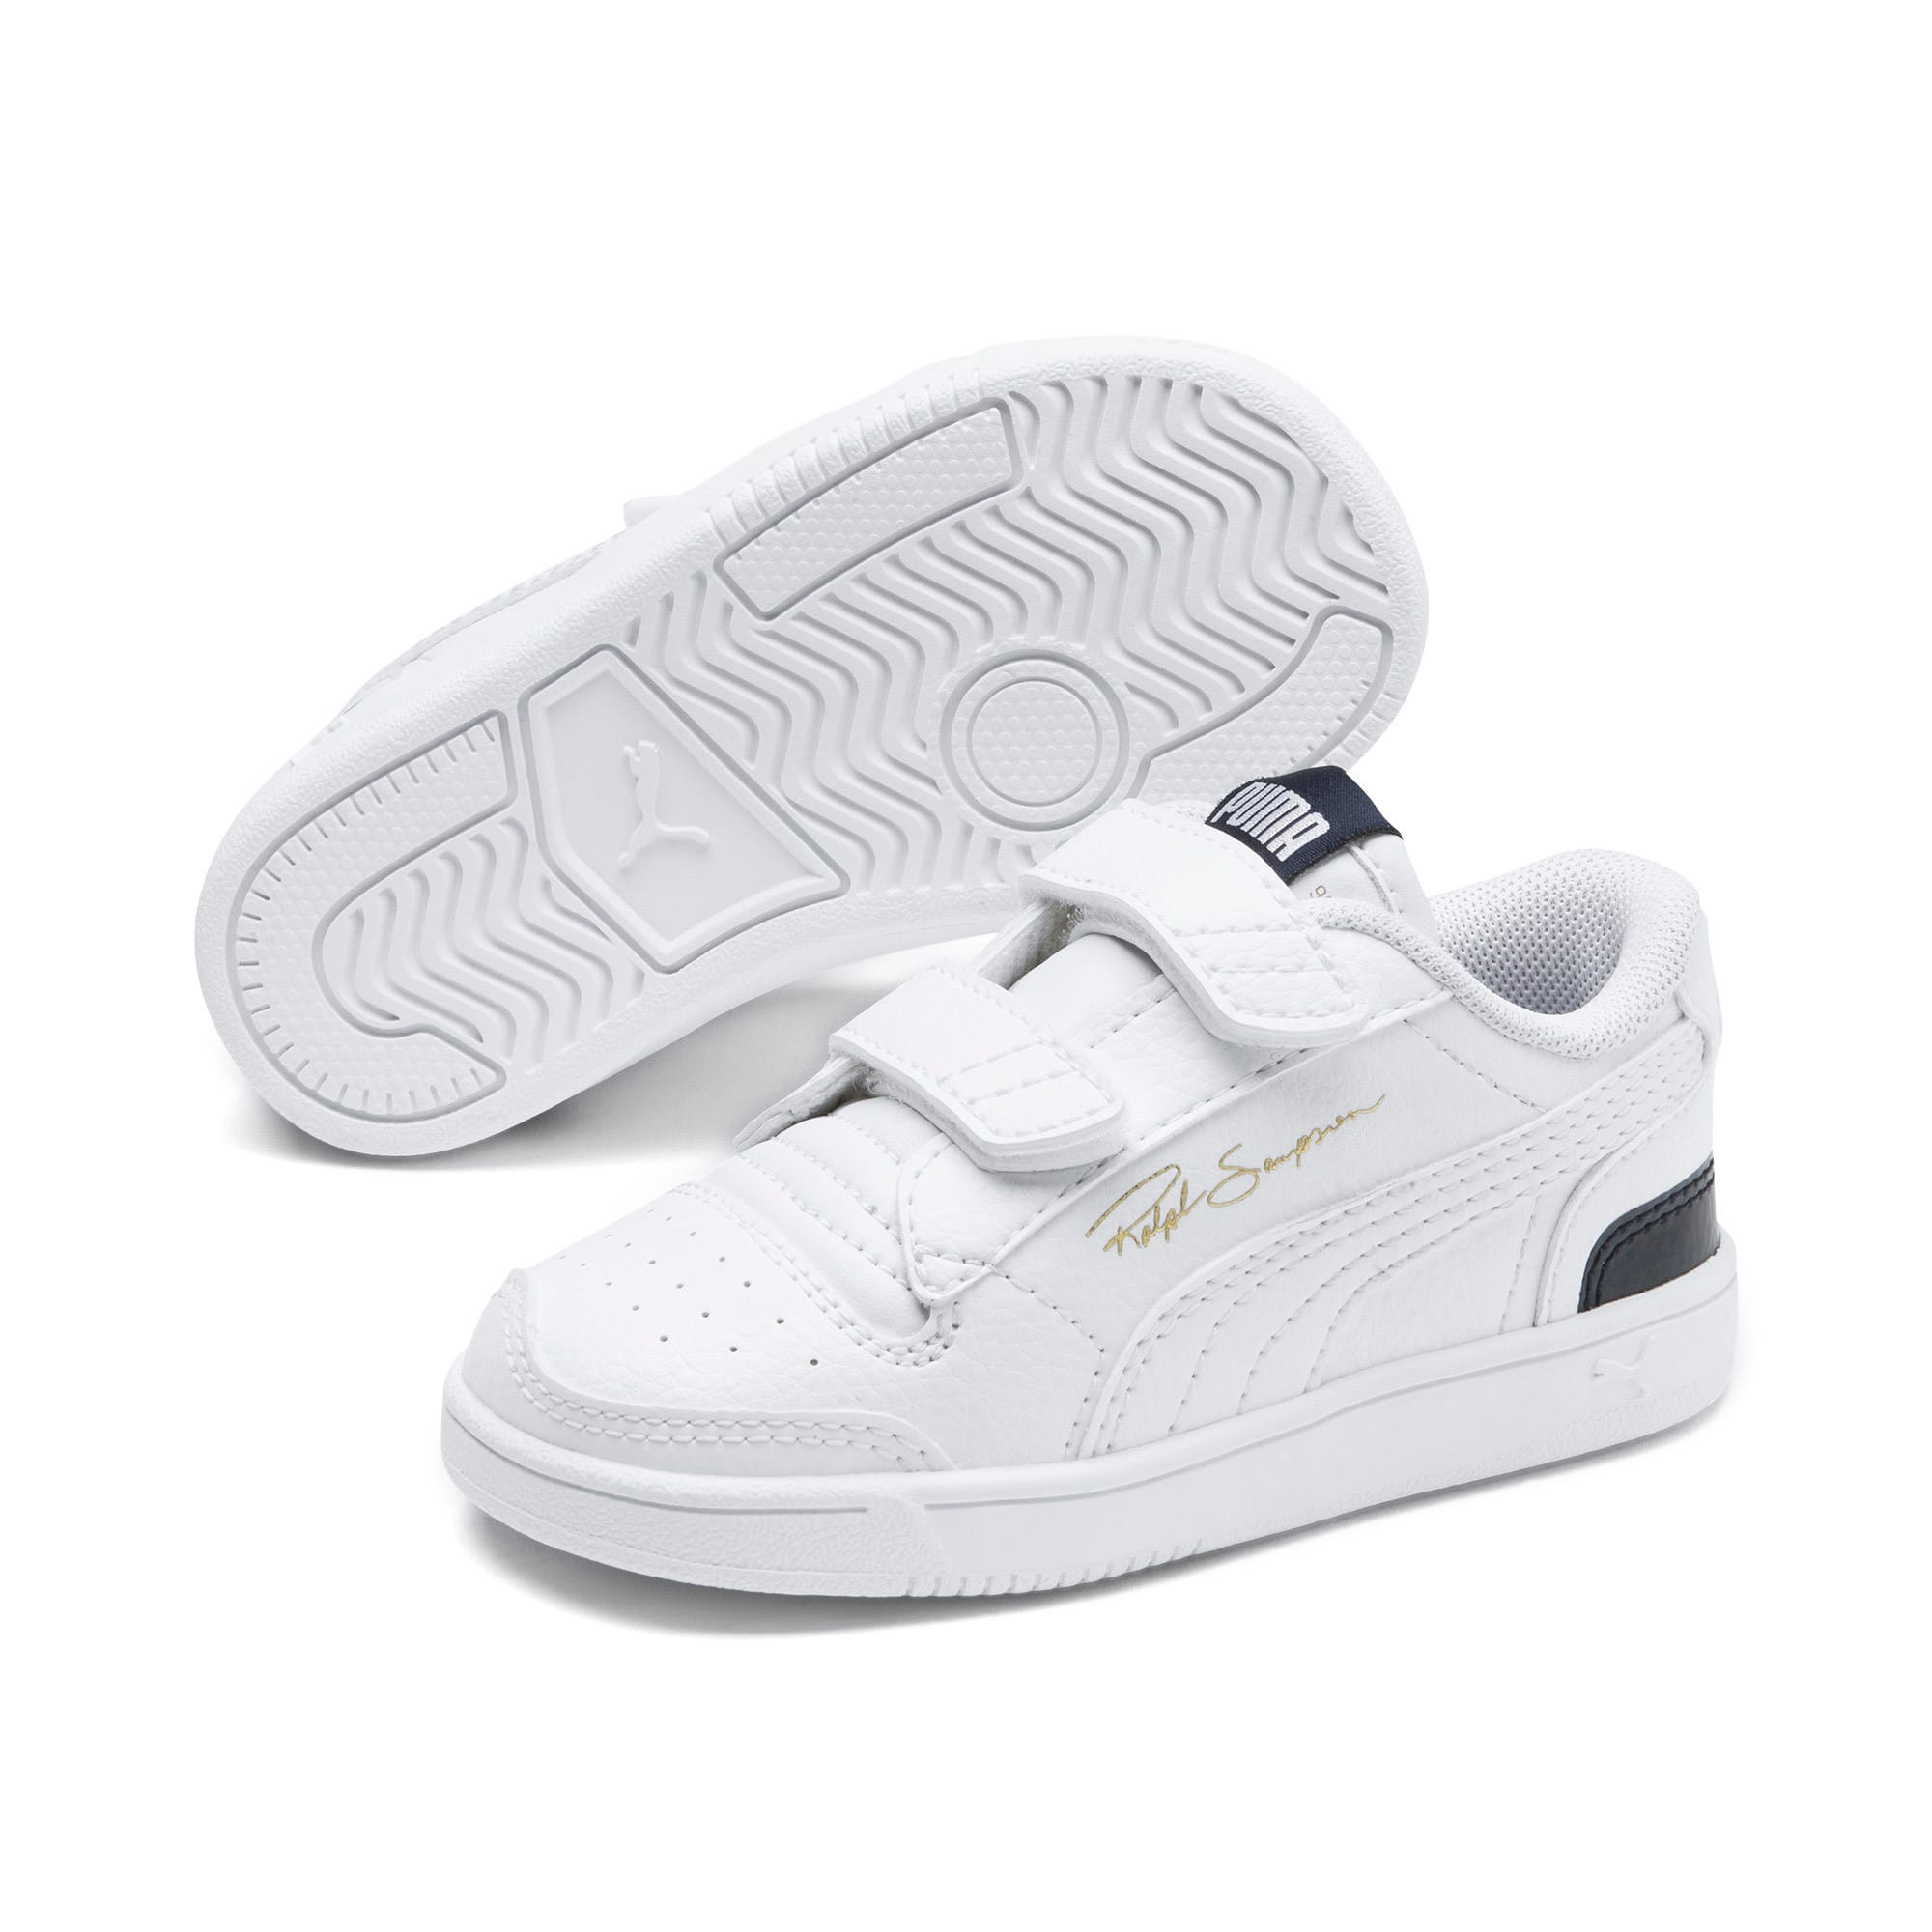 Thumbnail 2 of Ralph Sampson Lo V Babies' Trainers, White-Peacoat-White, medium